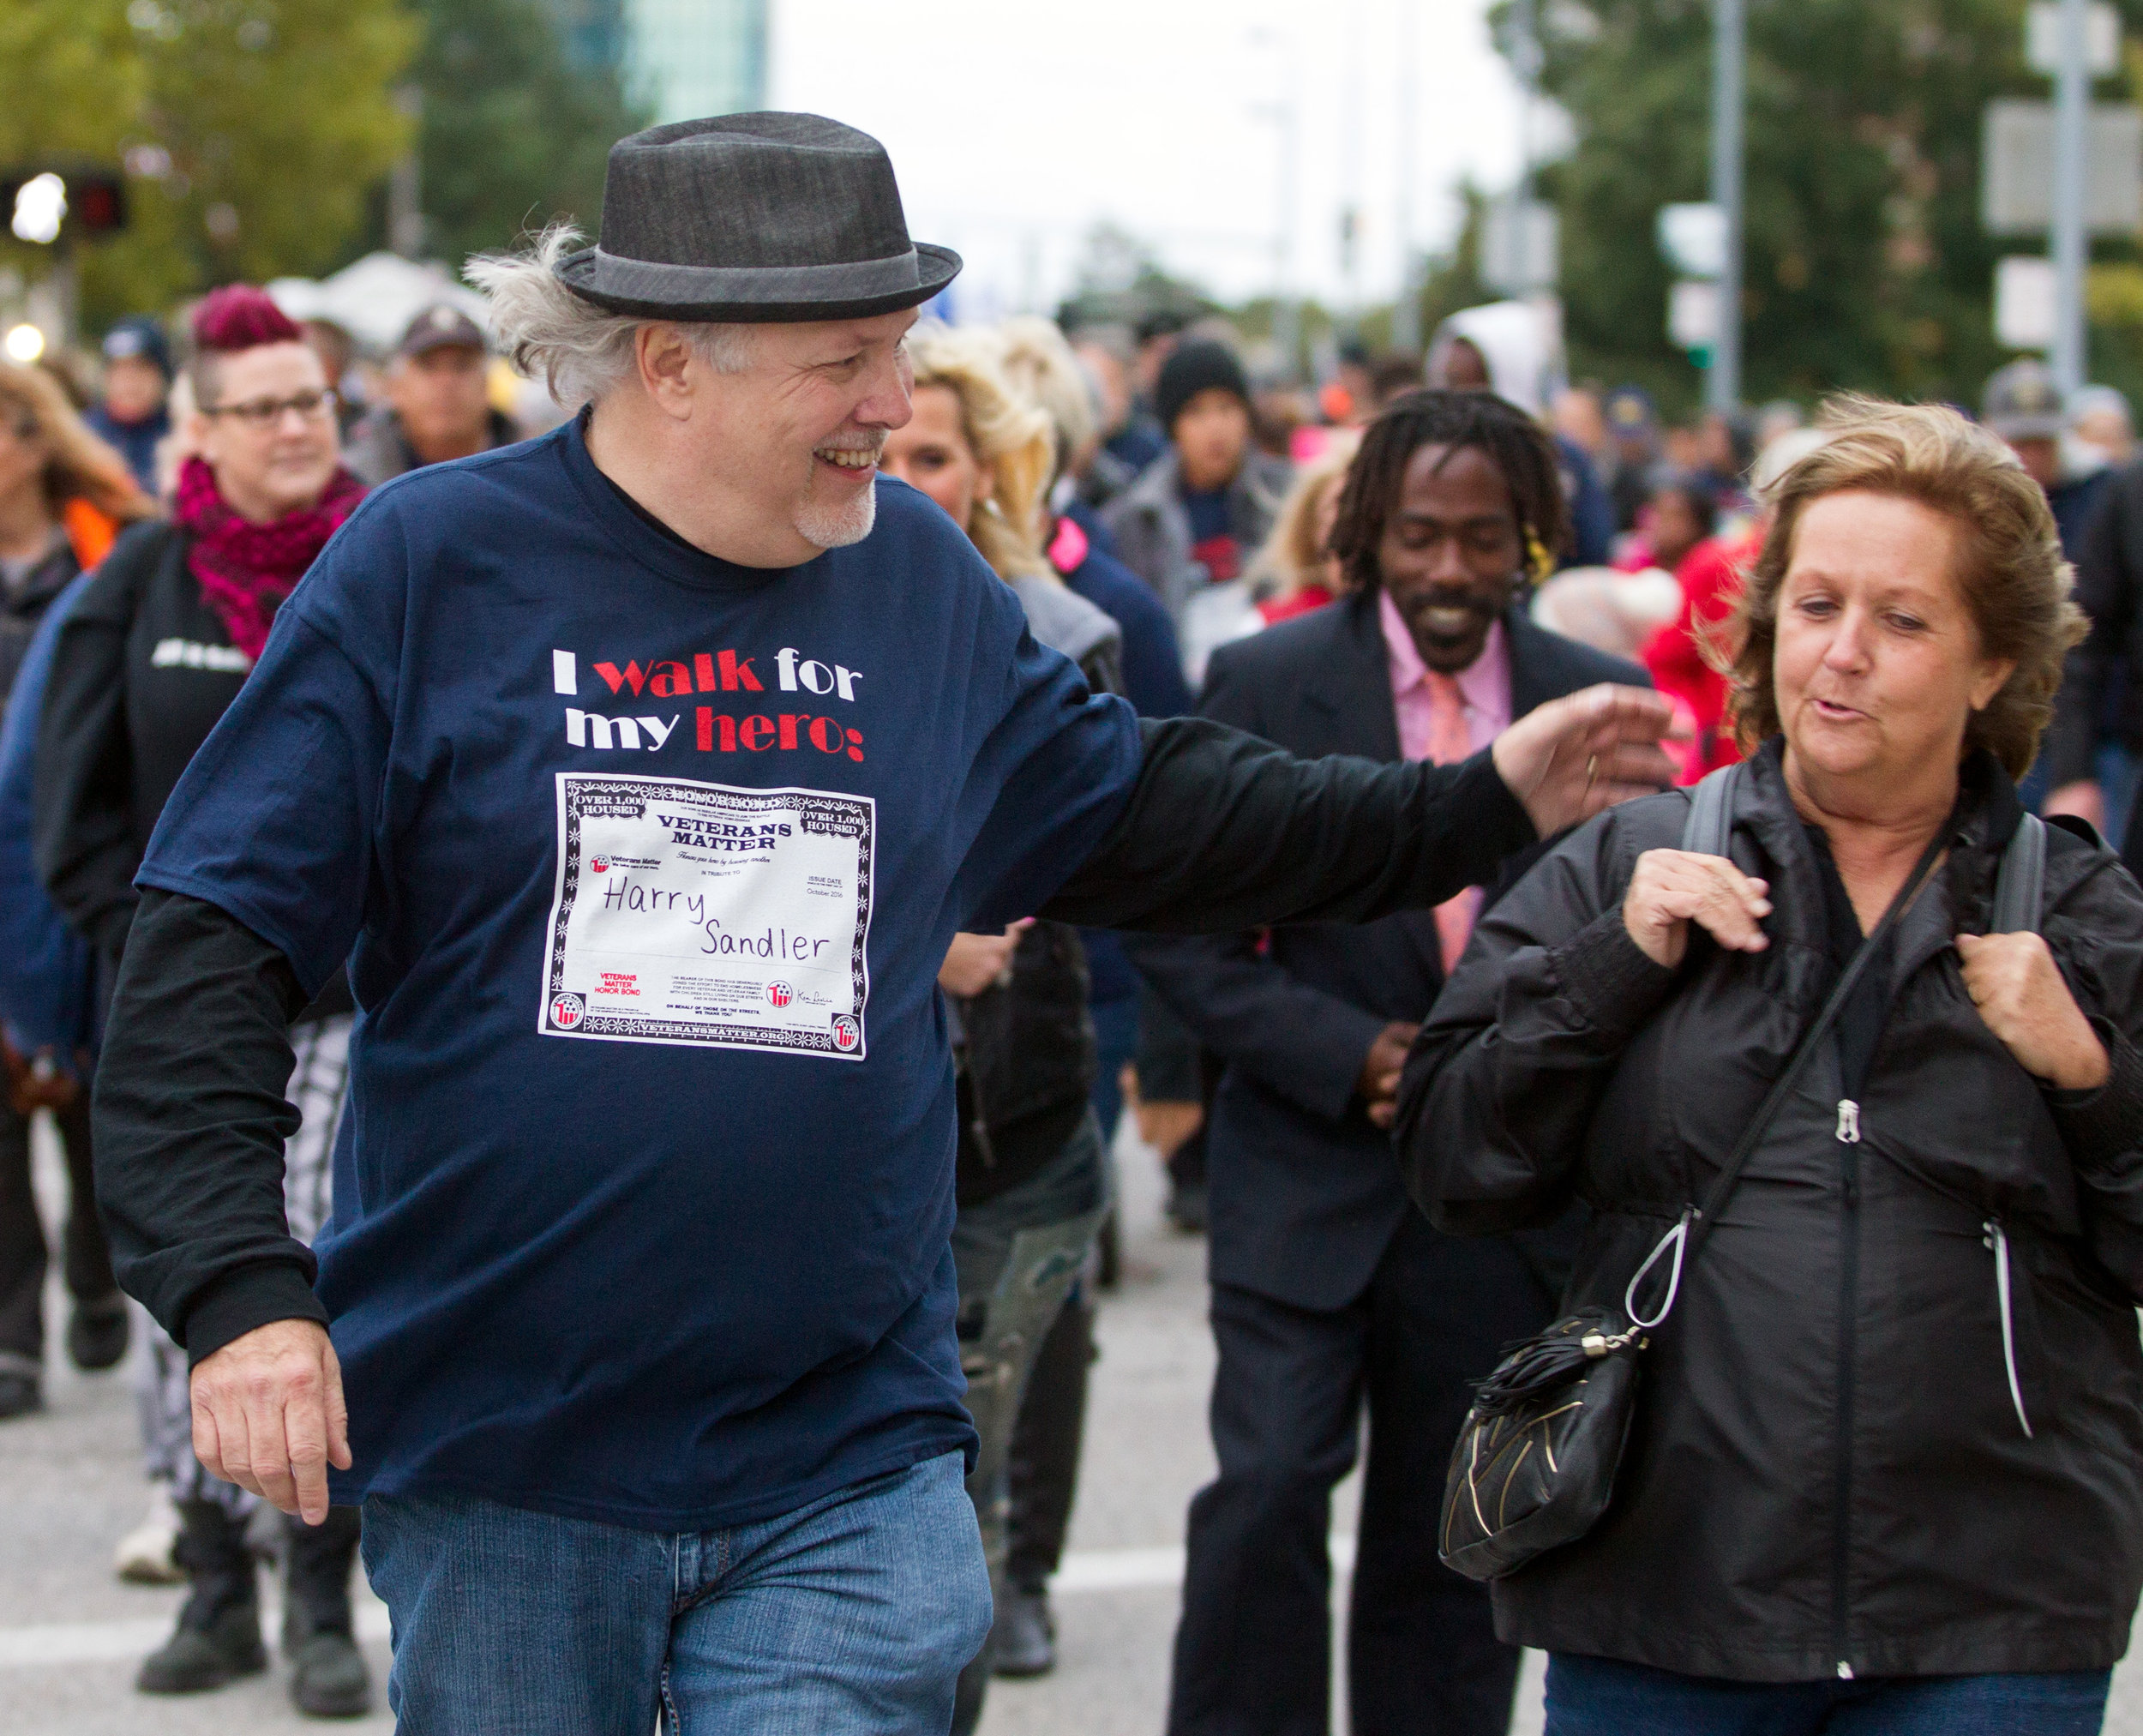 Veterans Matter advocate in chief Ken Leslie speaks with other participants as he leads the Walk to End Veteran Homelessness down Jackson St. in Downtown Toledo on Friday, Oct. 21, 2016.